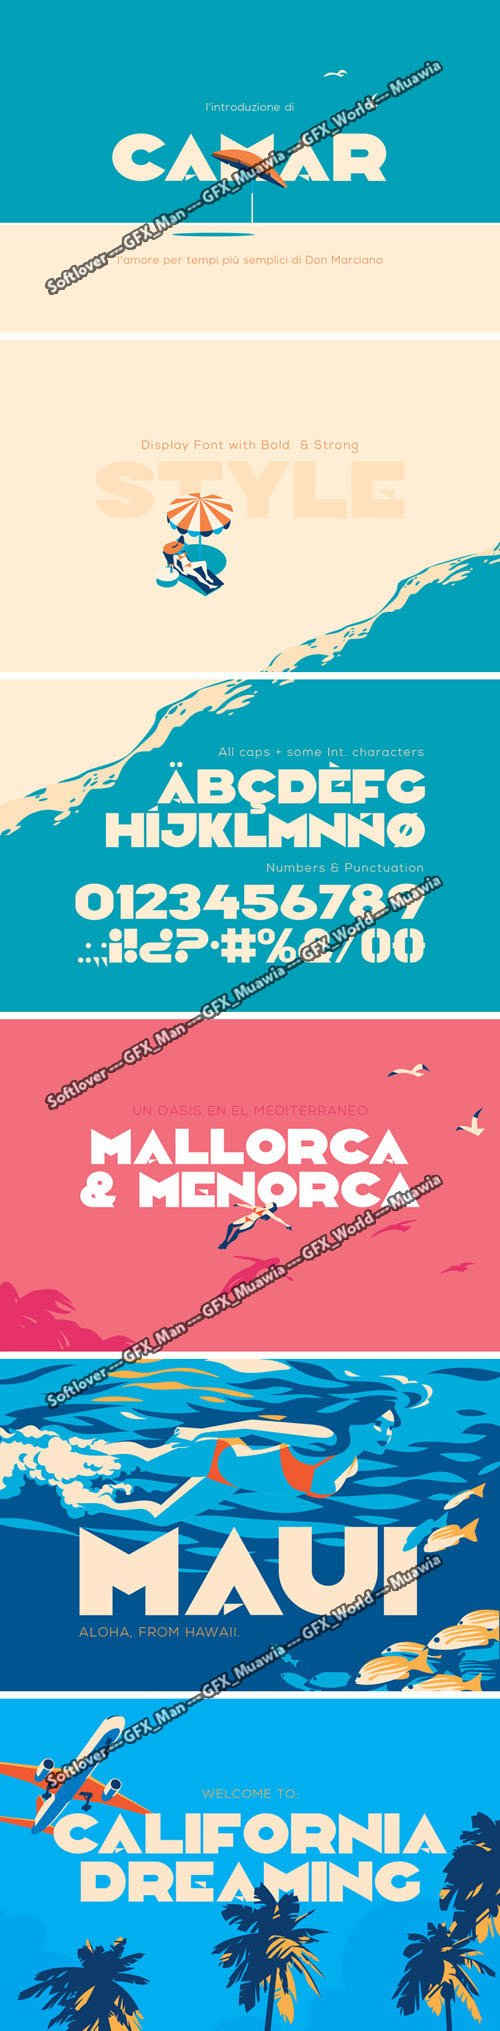 Camar Display Font with Bold & Strong